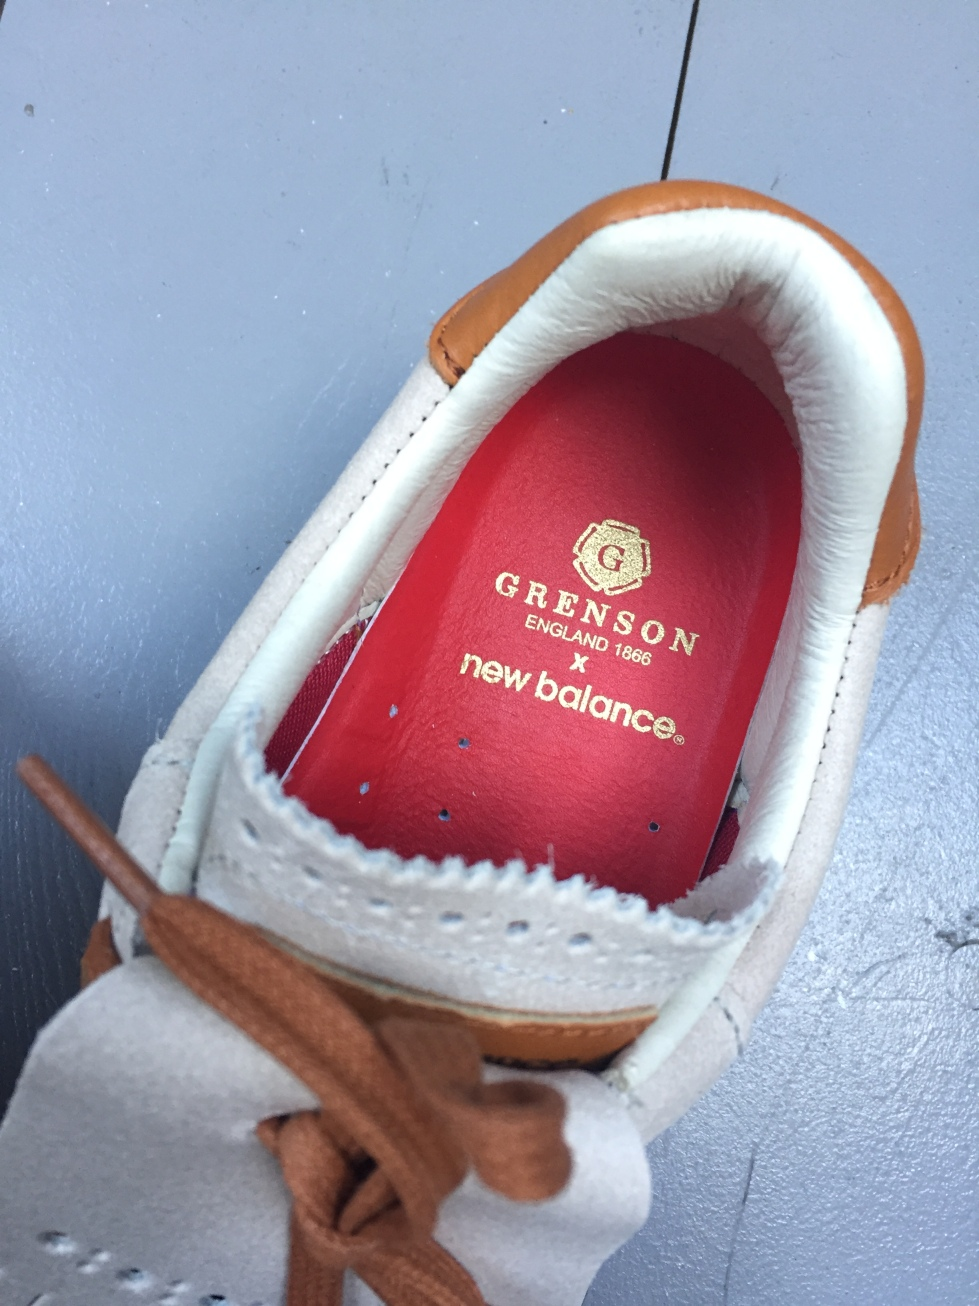 Grenson New Balance sneakers